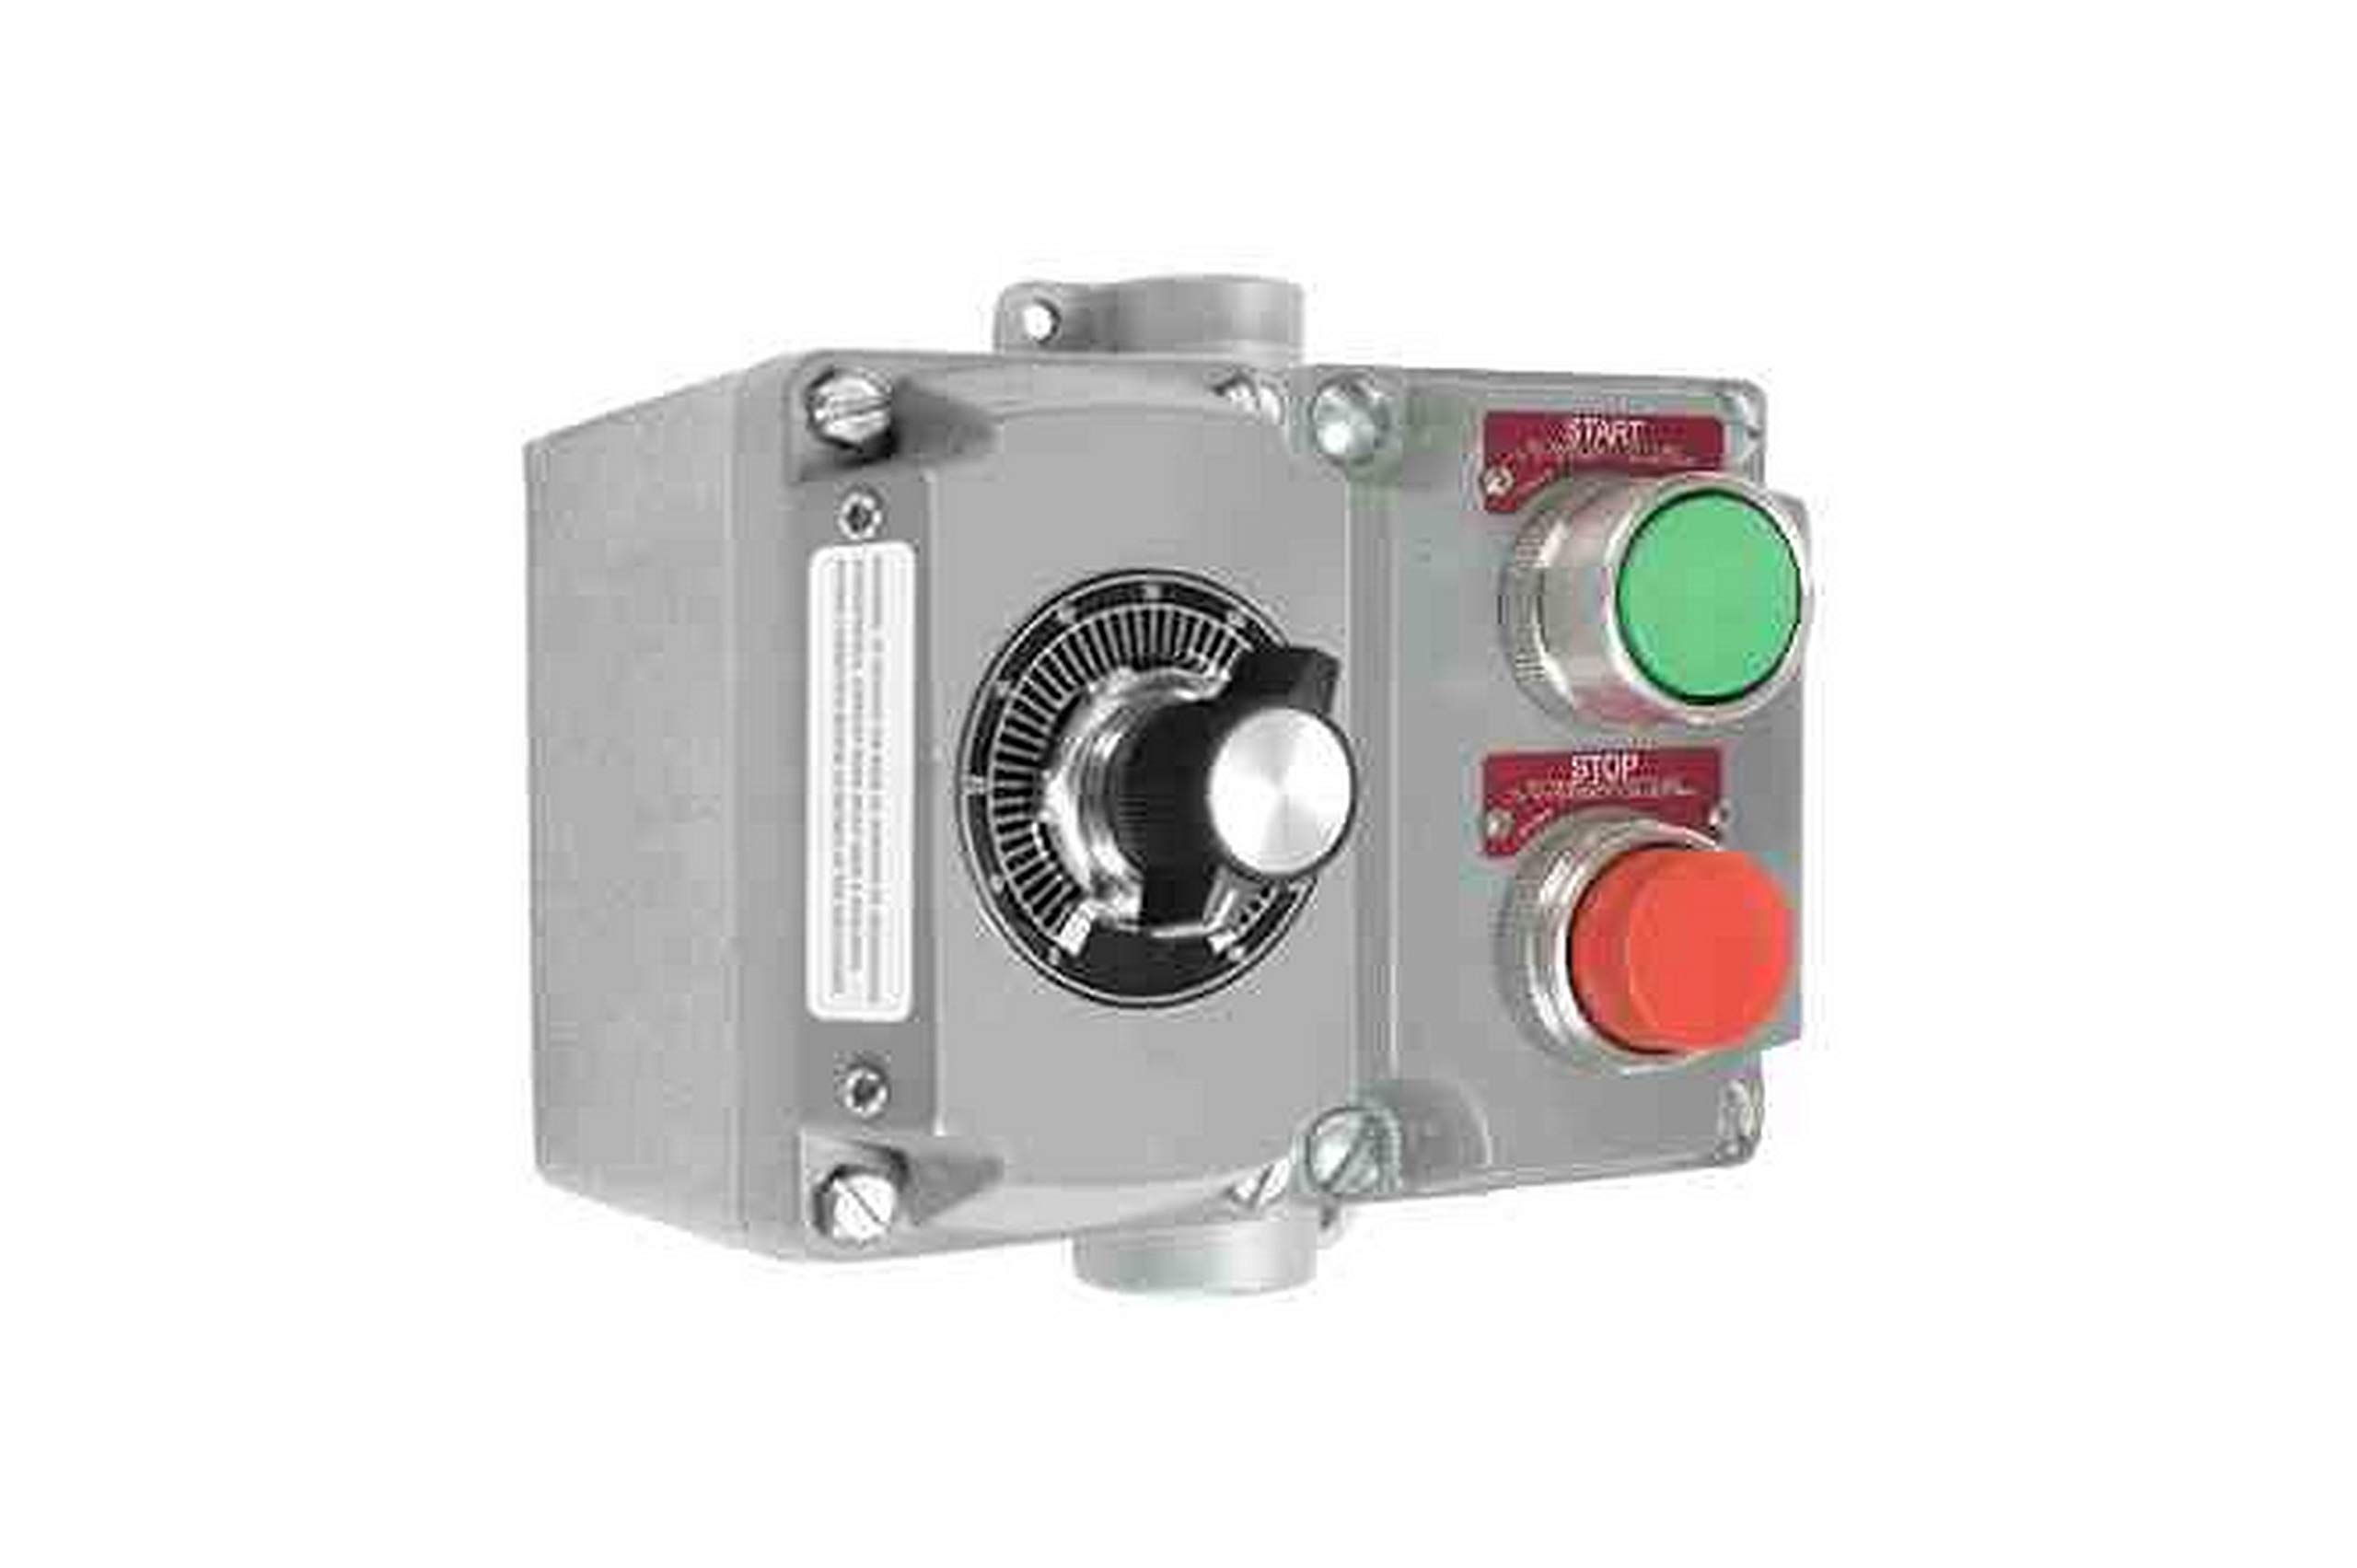 Explosion Proof Switch w/Potentiometer - C1D1 C2D1-1-10K Ohms - Rotary Dial - Double Gang Box by Larson Electronics